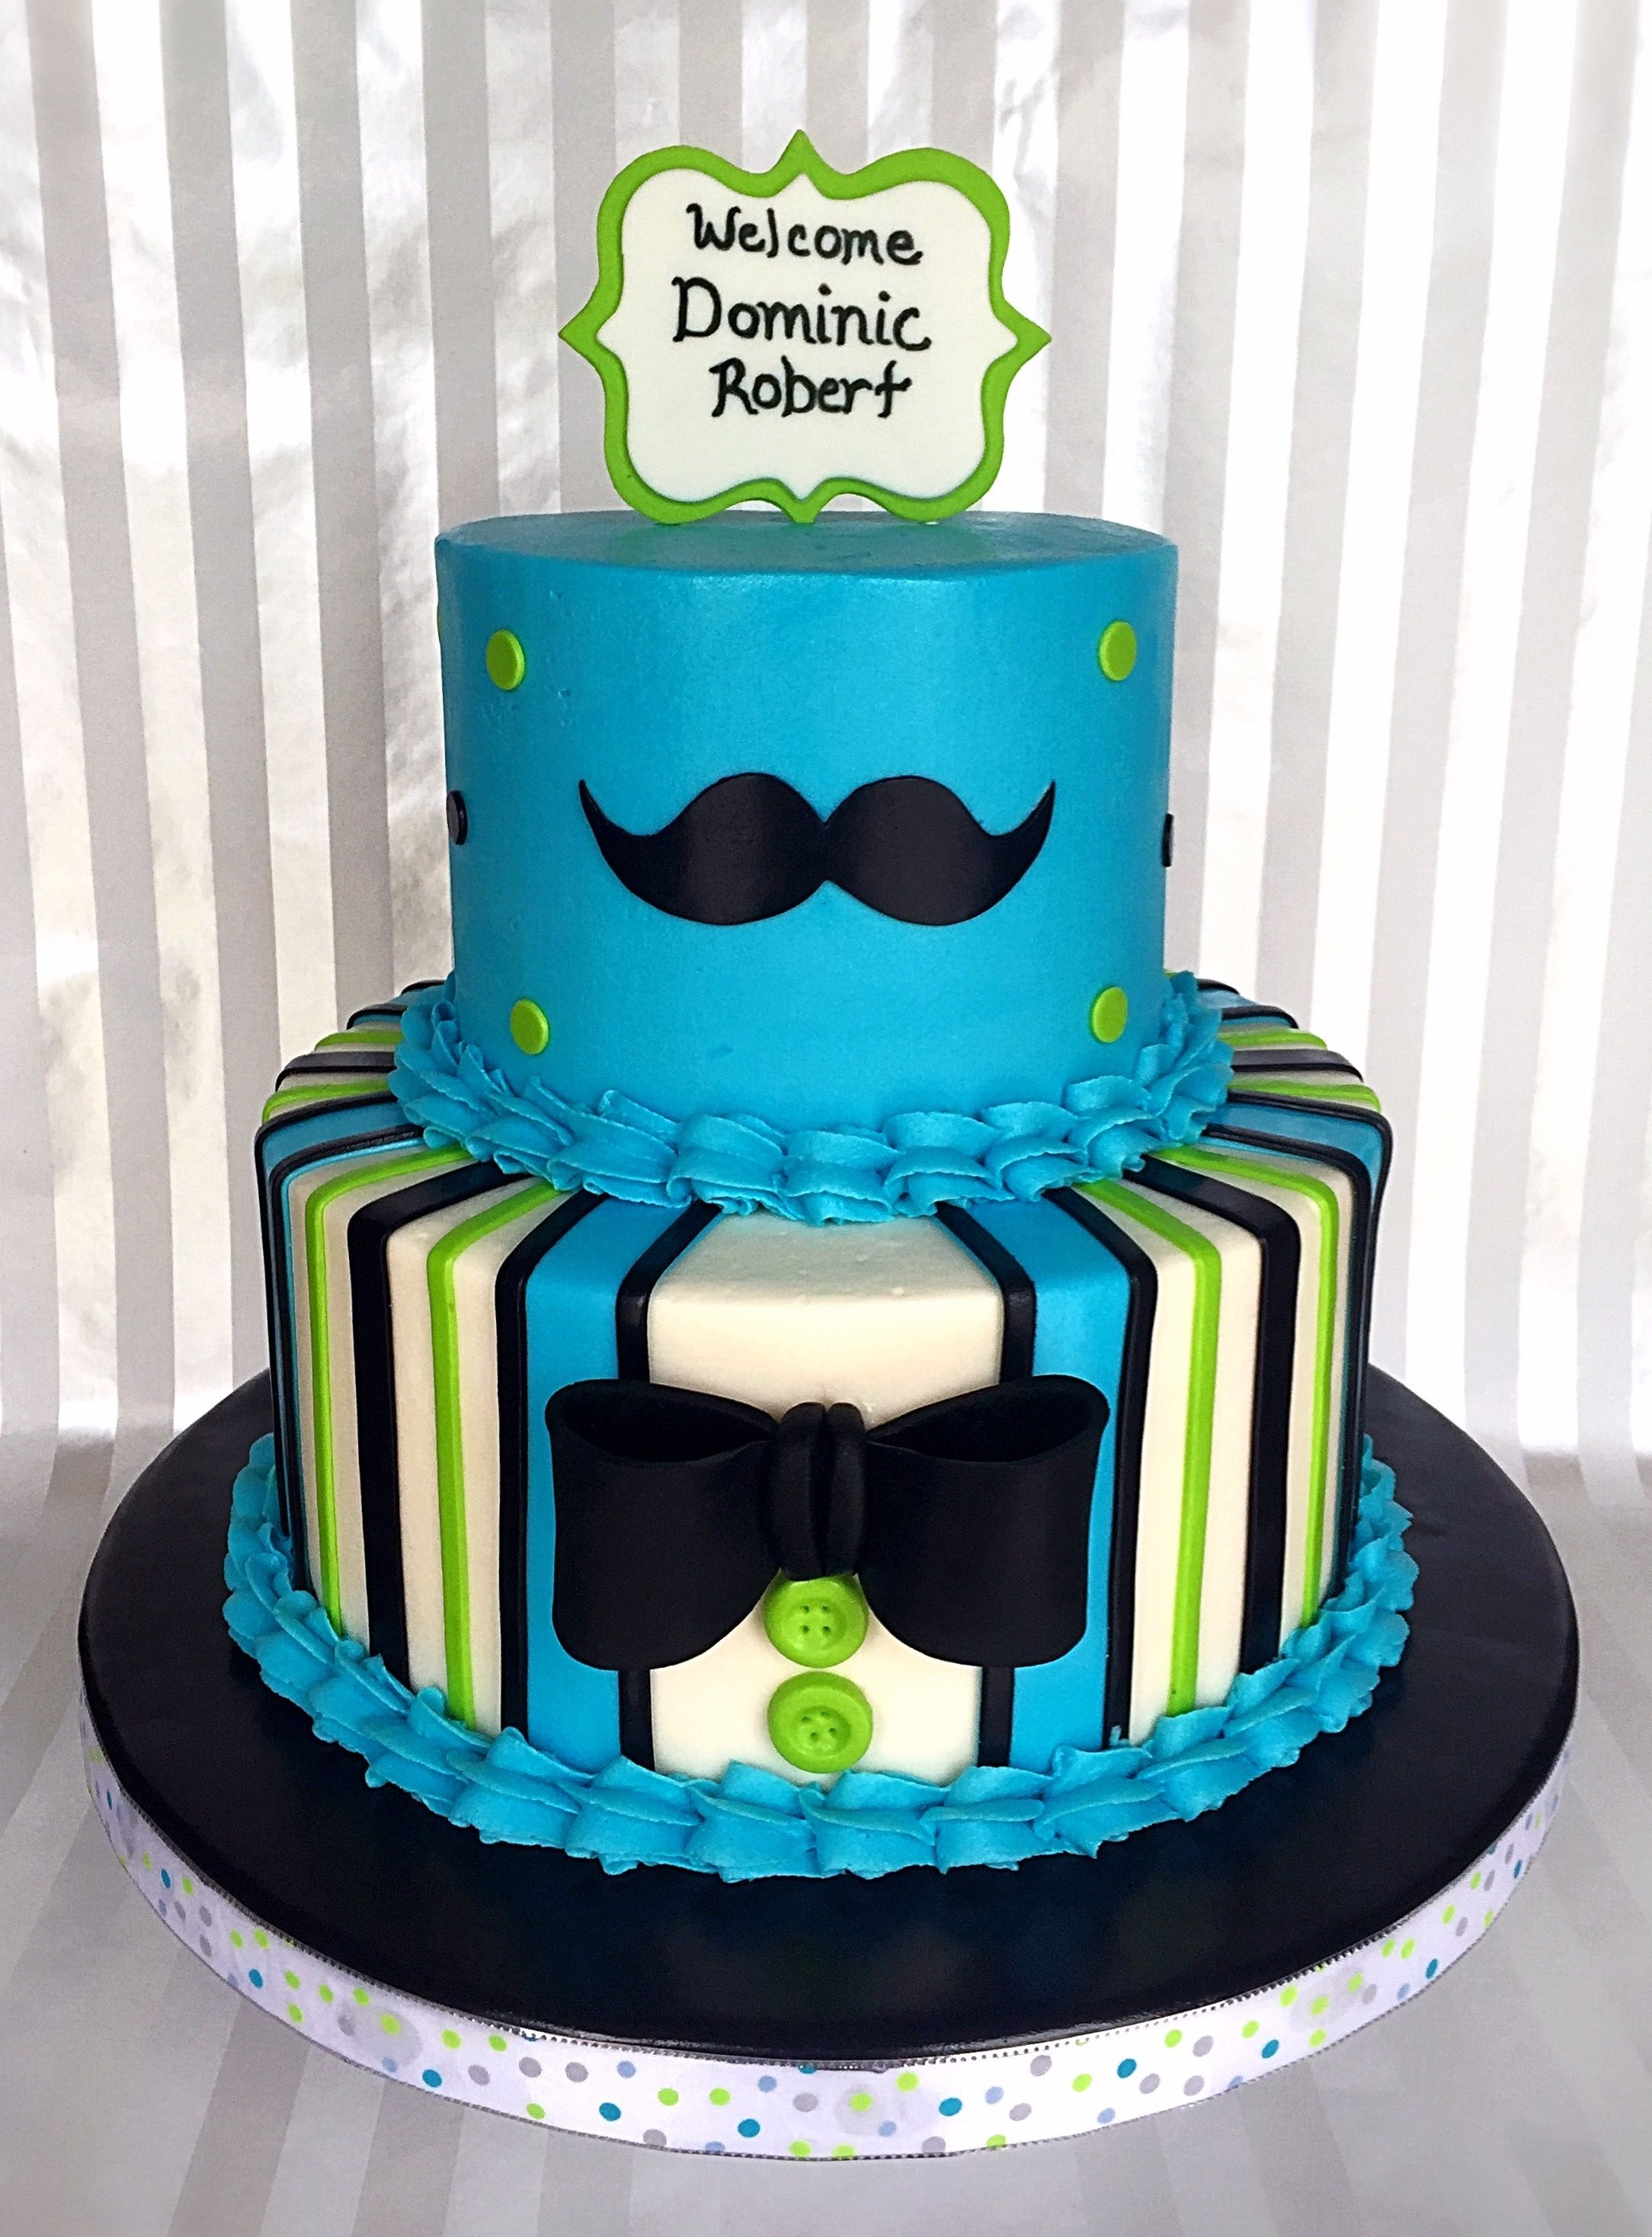 Superb Bow Tie And Mustache Baby Shower Cake